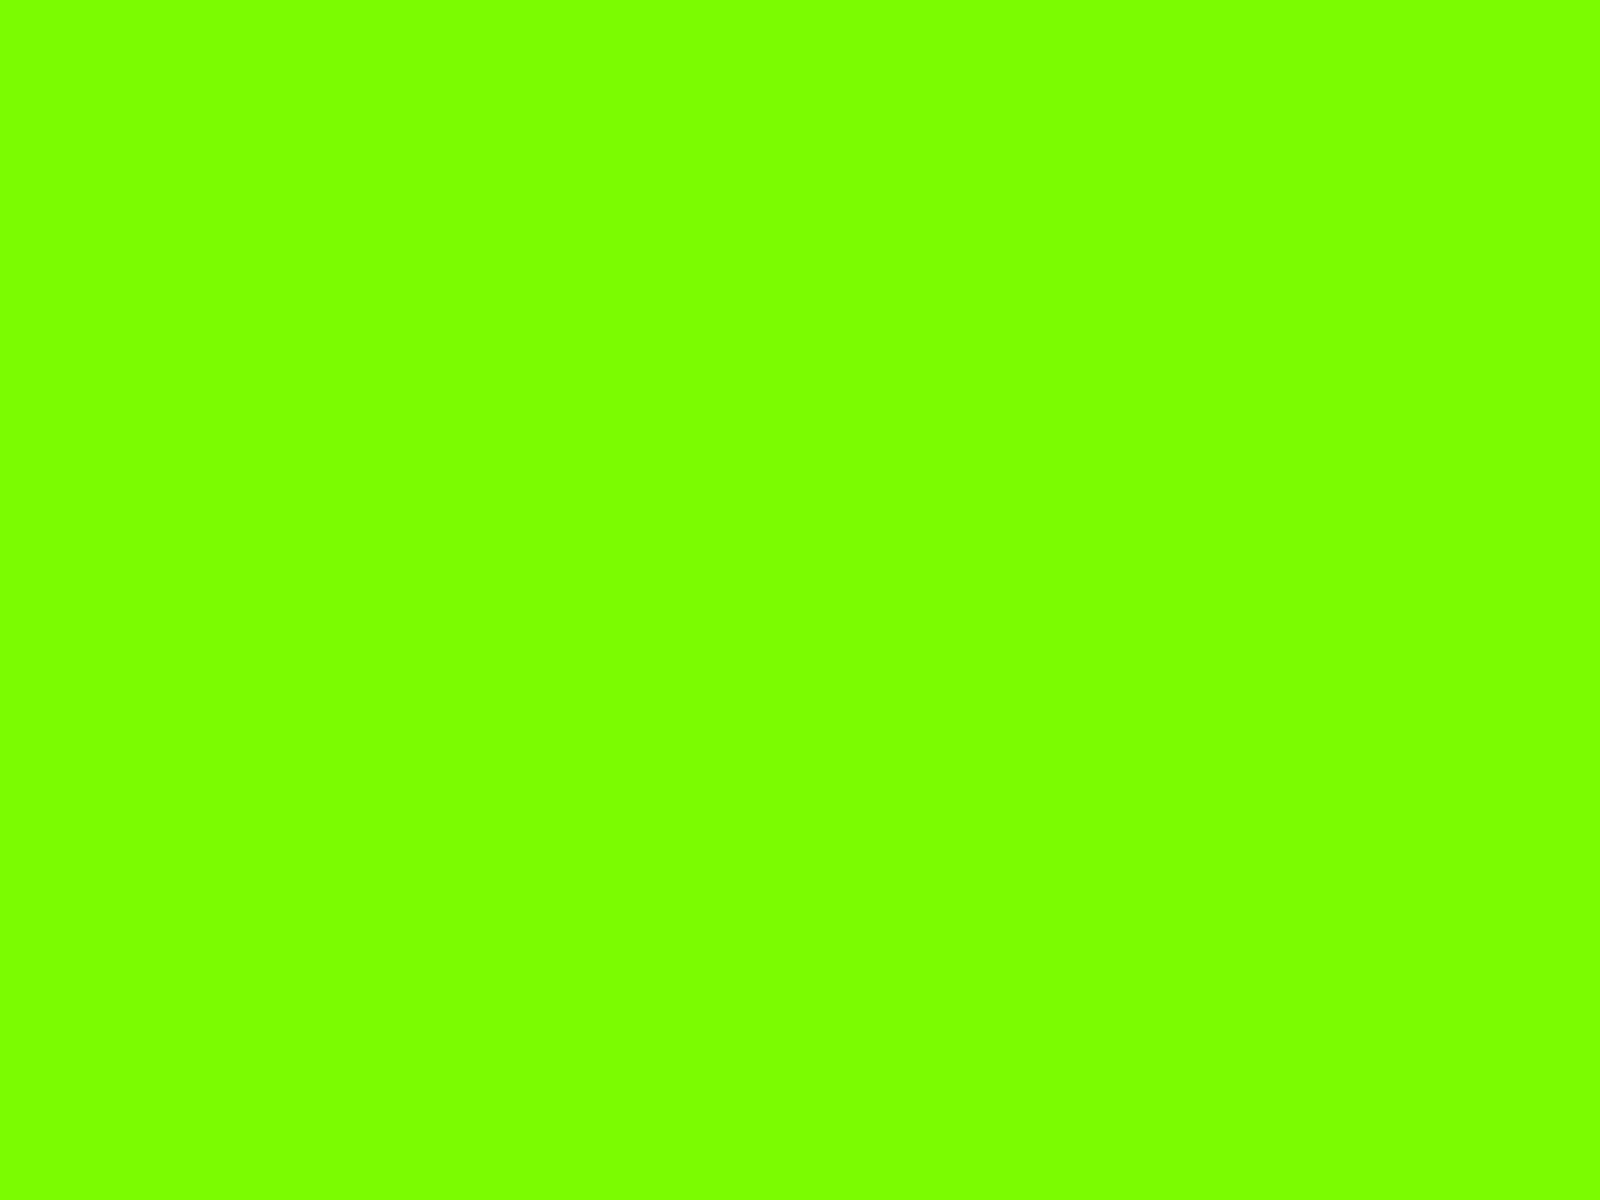 1600x1200 Lawn Green Solid Color Background